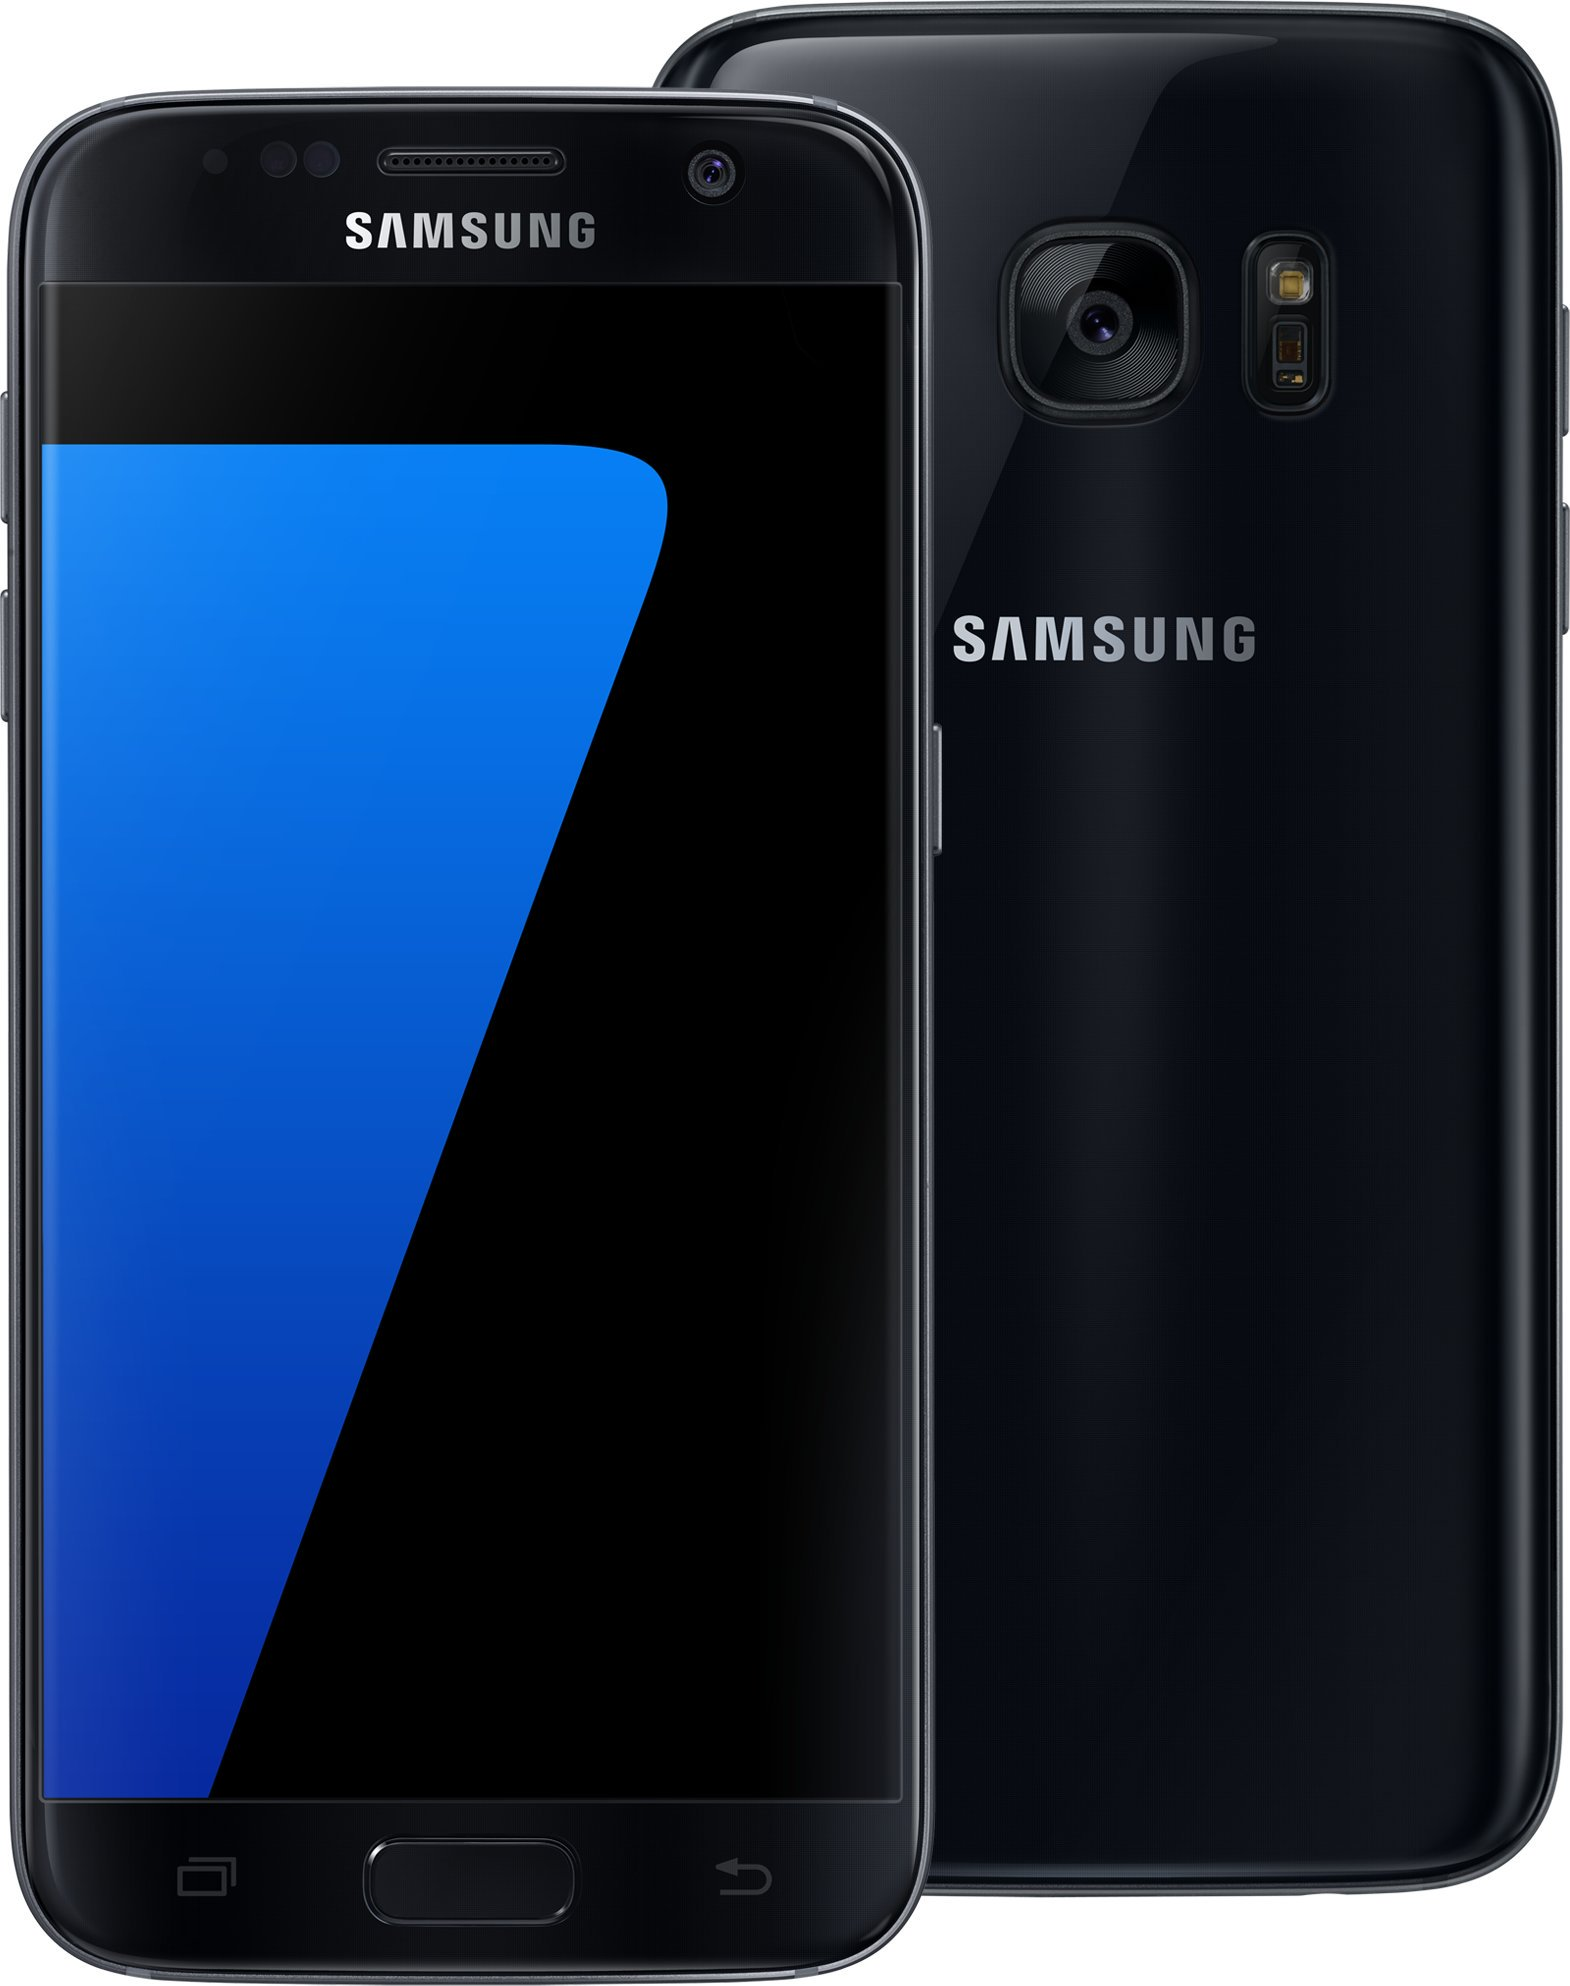 Samsung Galaxy S7 Black - 32GB